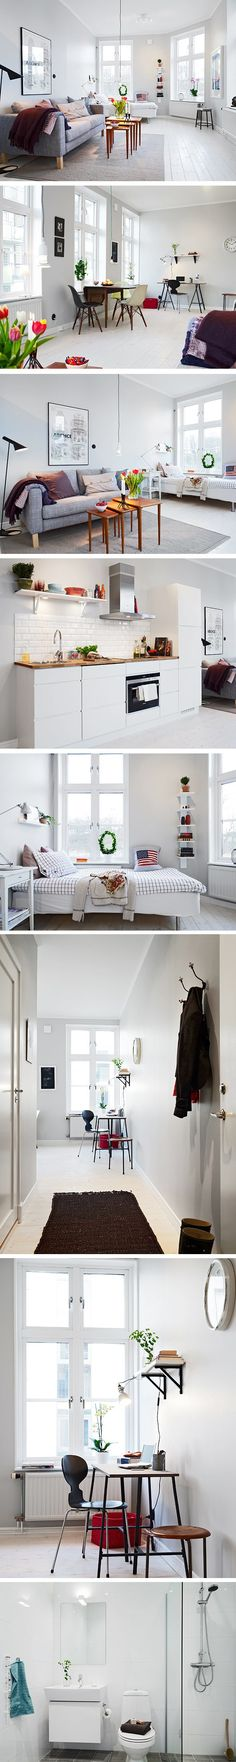 http://www.journal-du-design.fr/design/petit-appartement-a-goteborg-suede-24556/